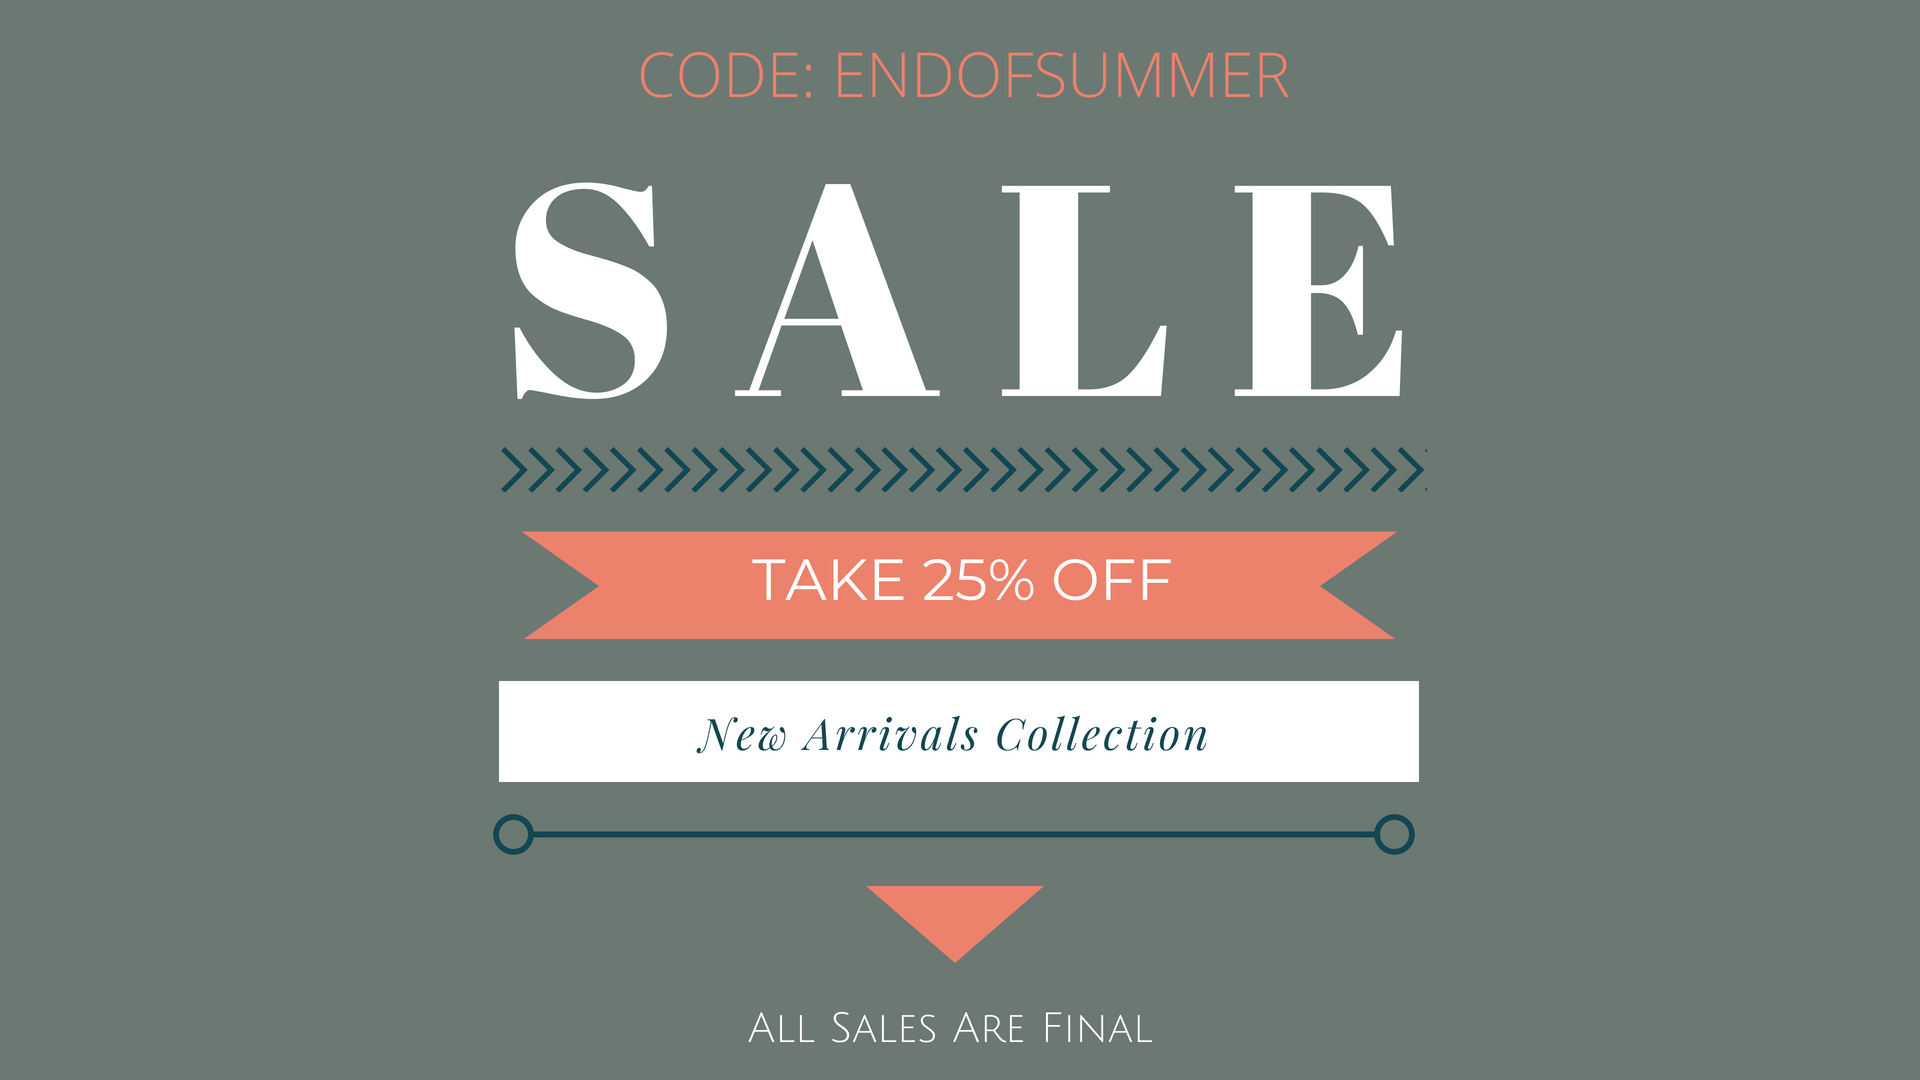 TAKE 25% OFF NEW ARRIVALS UNTIL 07/18/2018